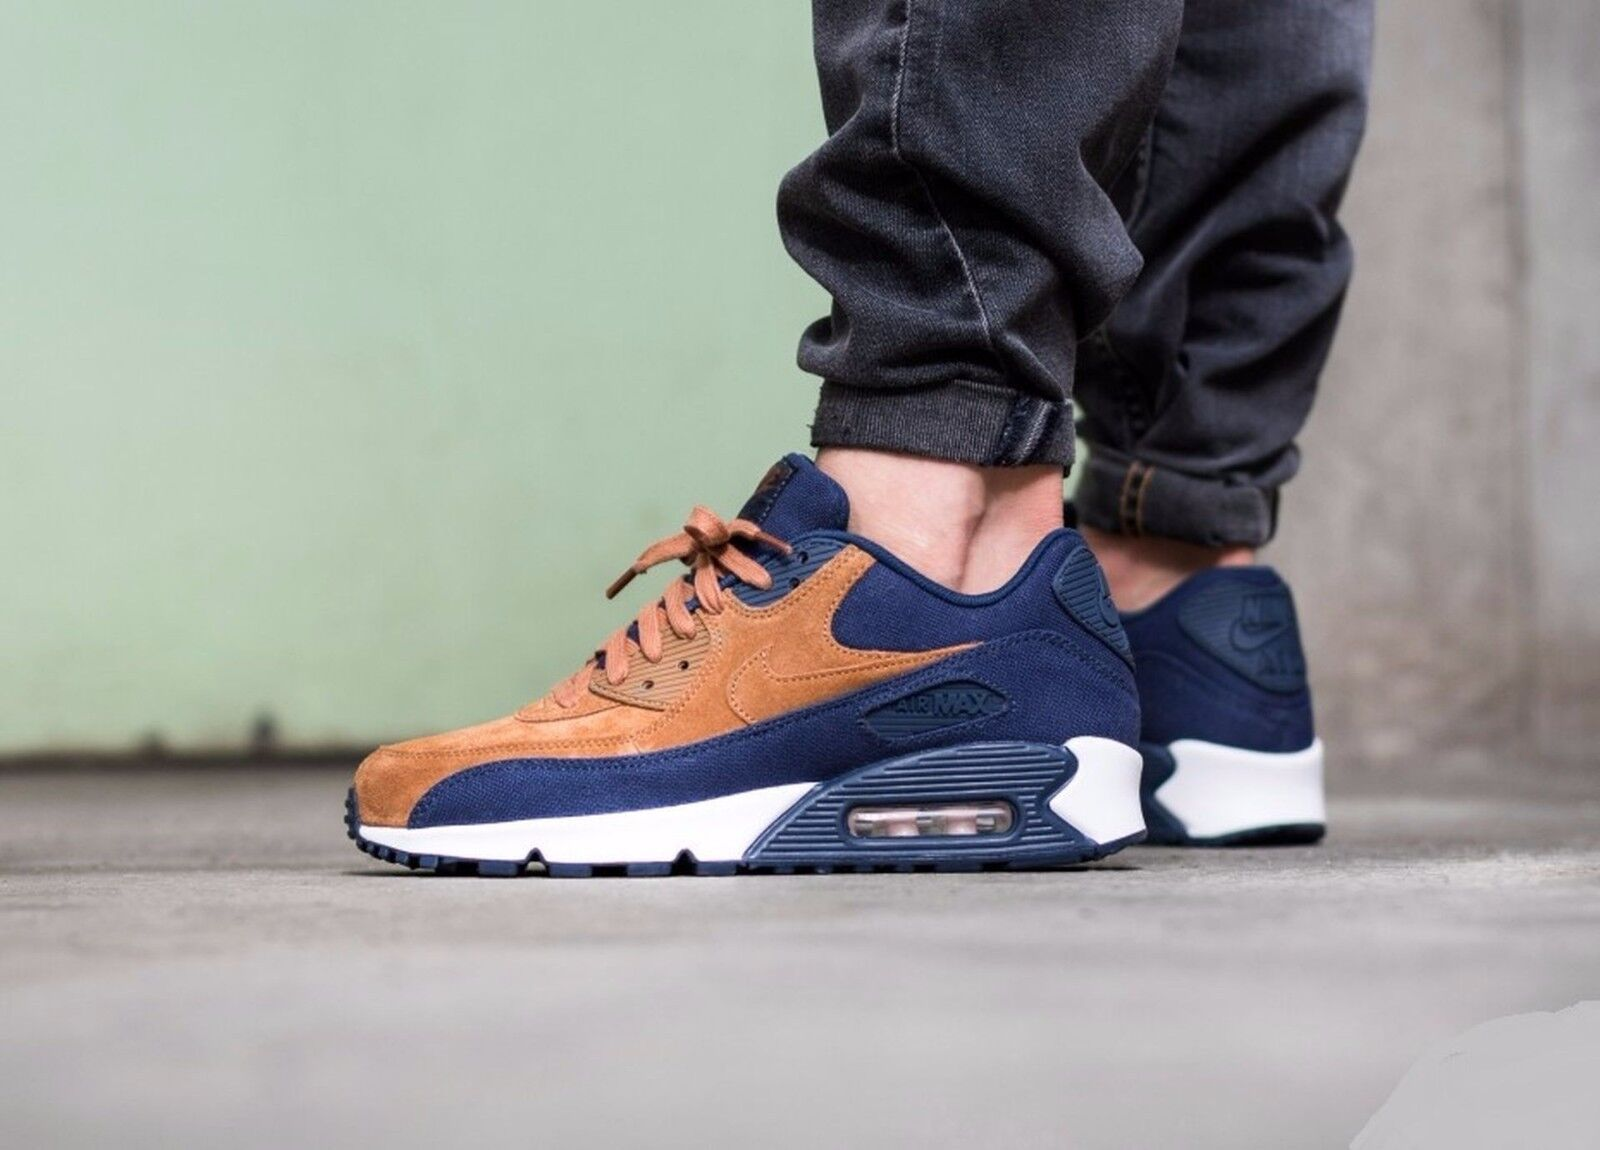 Nike Air Max 90 PRM 'Ale Brown' 700155-201 Mens Sz 10 Ale Brown   Midnight Navy